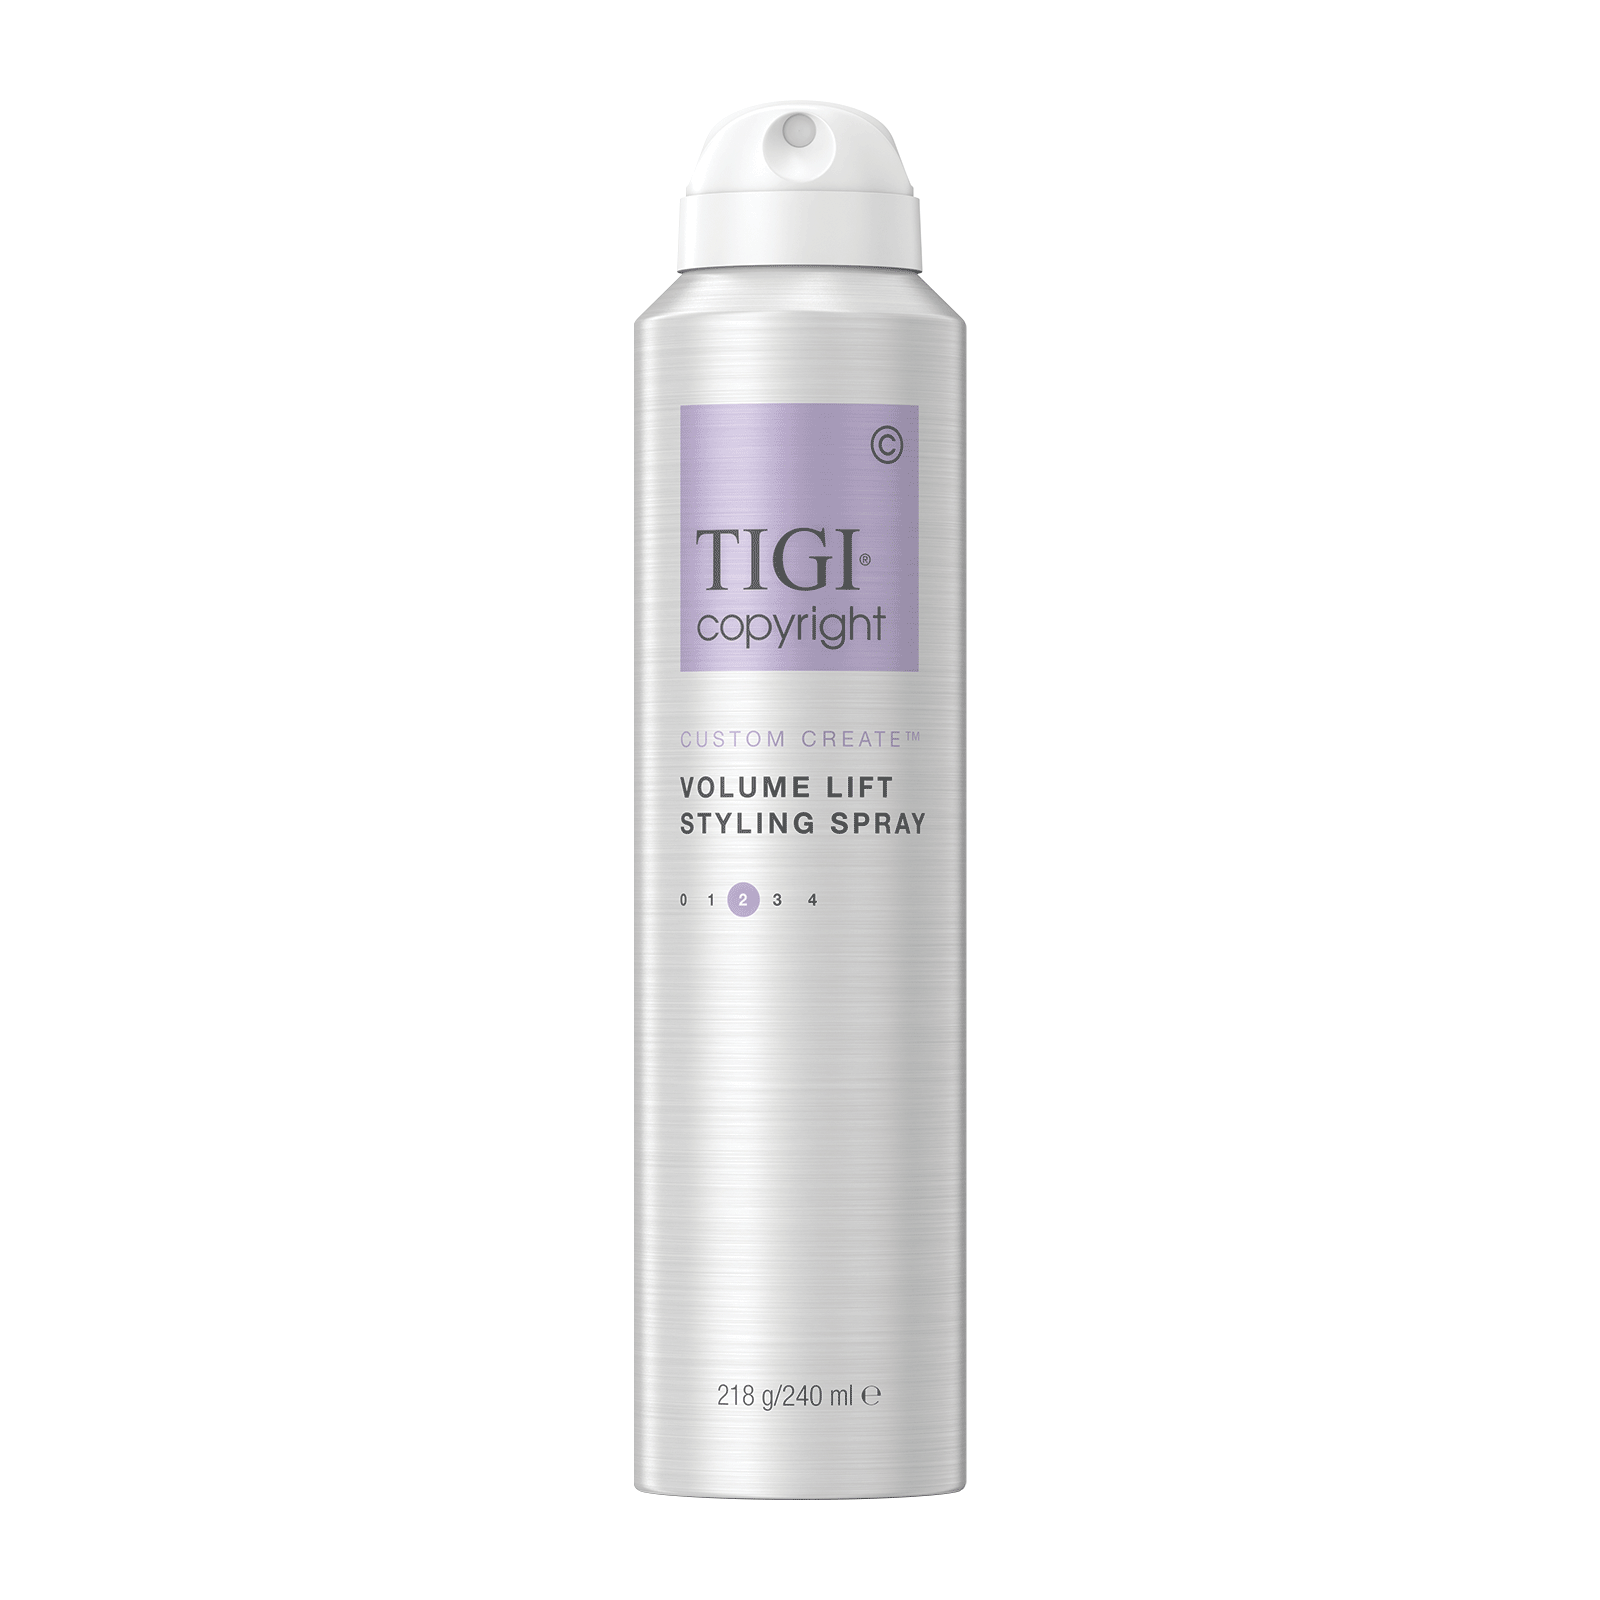 Copyright Volume Lift Styling Spray